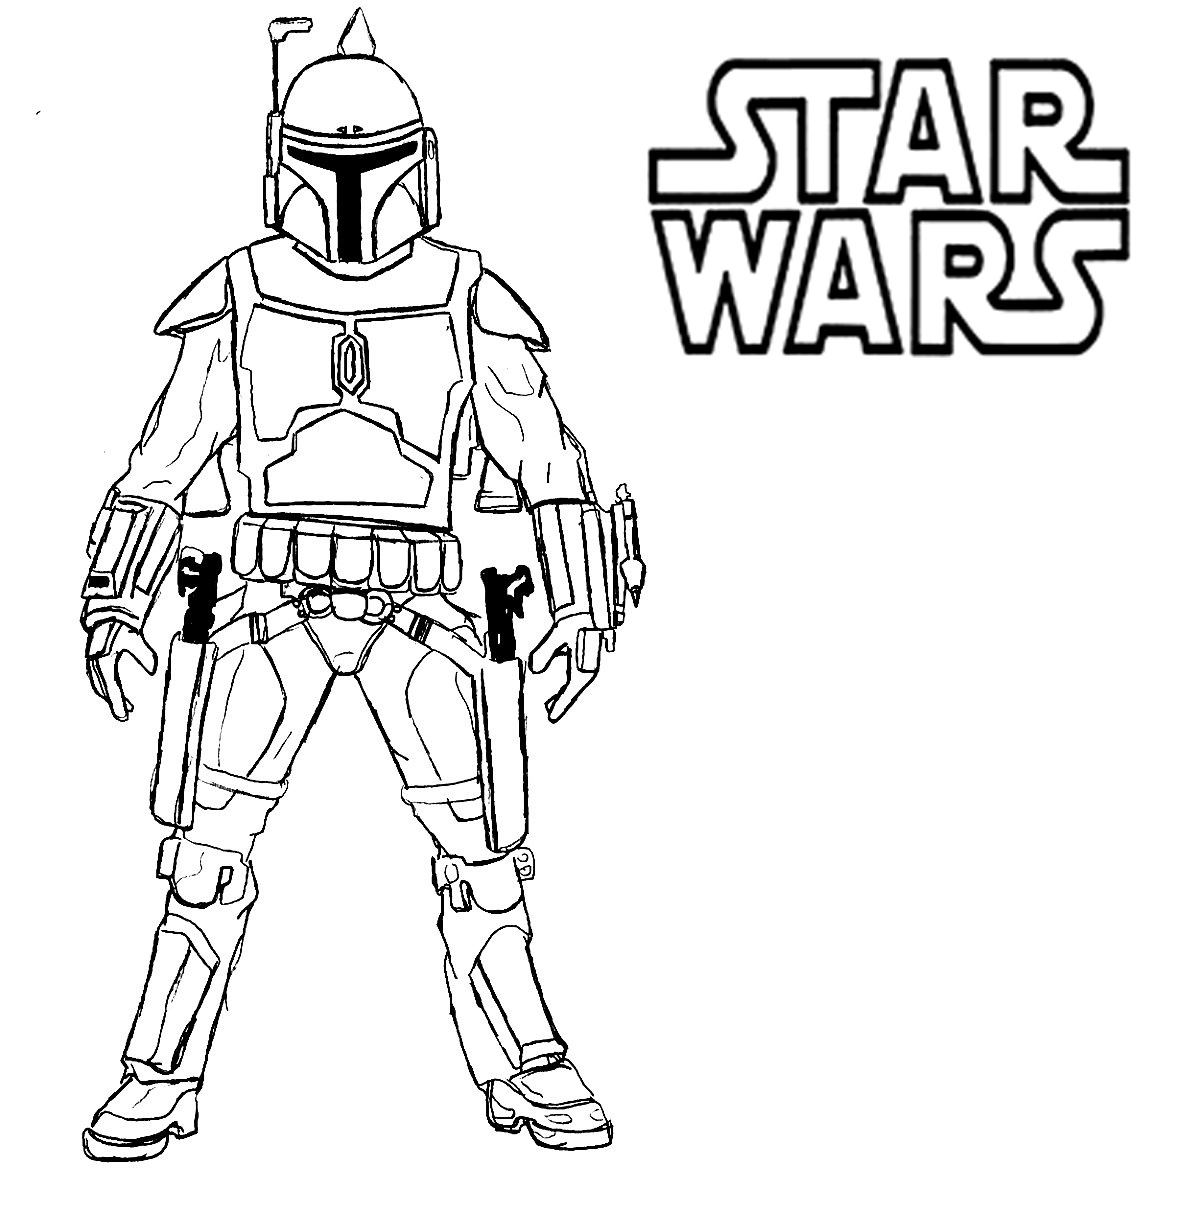 free star wars coloring pages the evil darth vader in star wars coloring page download star free wars pages coloring